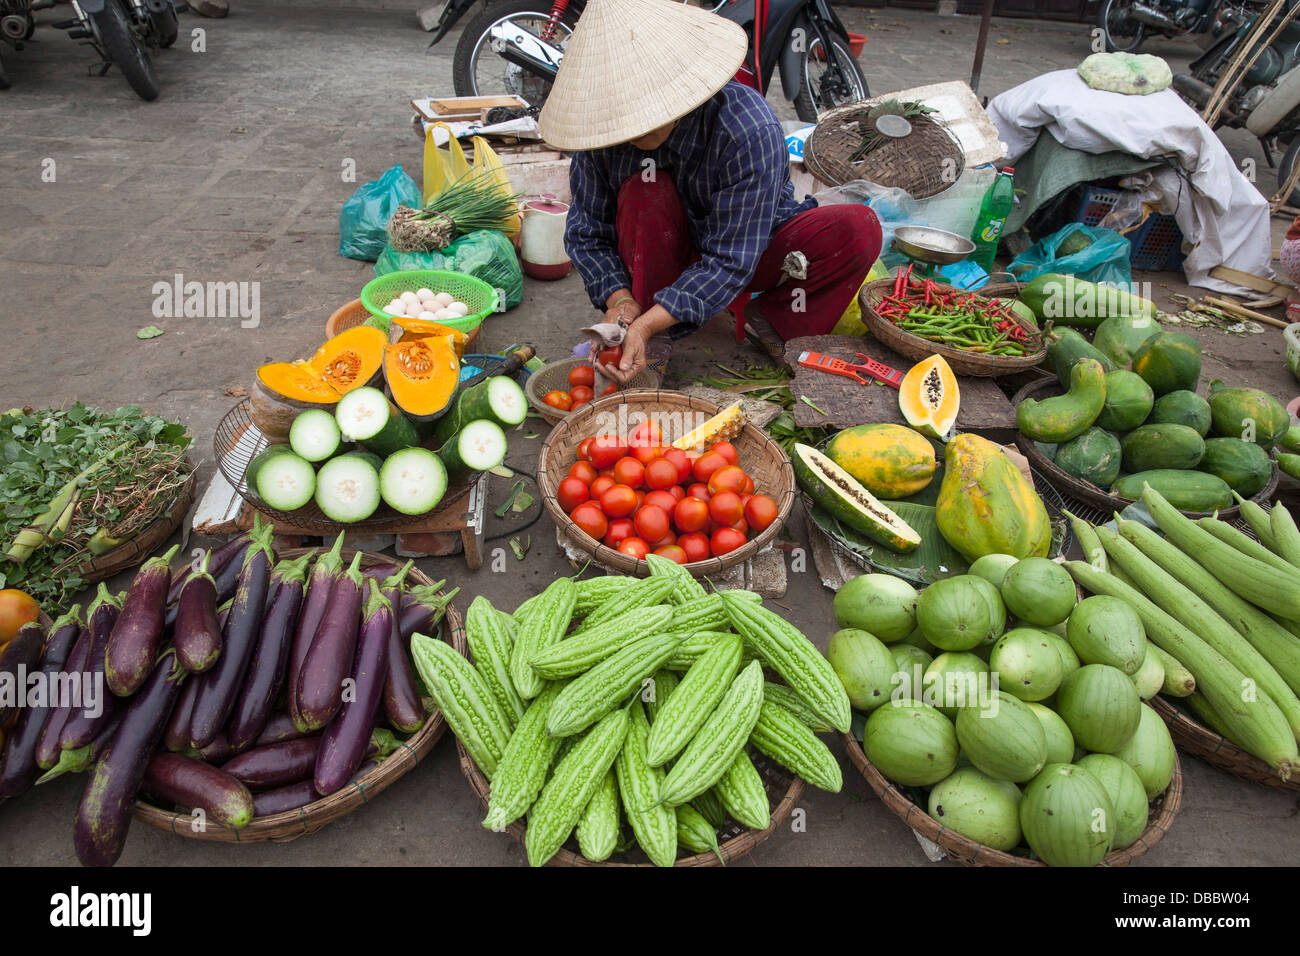 Woman selling fresh vegetables and other foods at market in Hoi An, Quang Nam, Vietnam, Southeast Asia - Stock Image